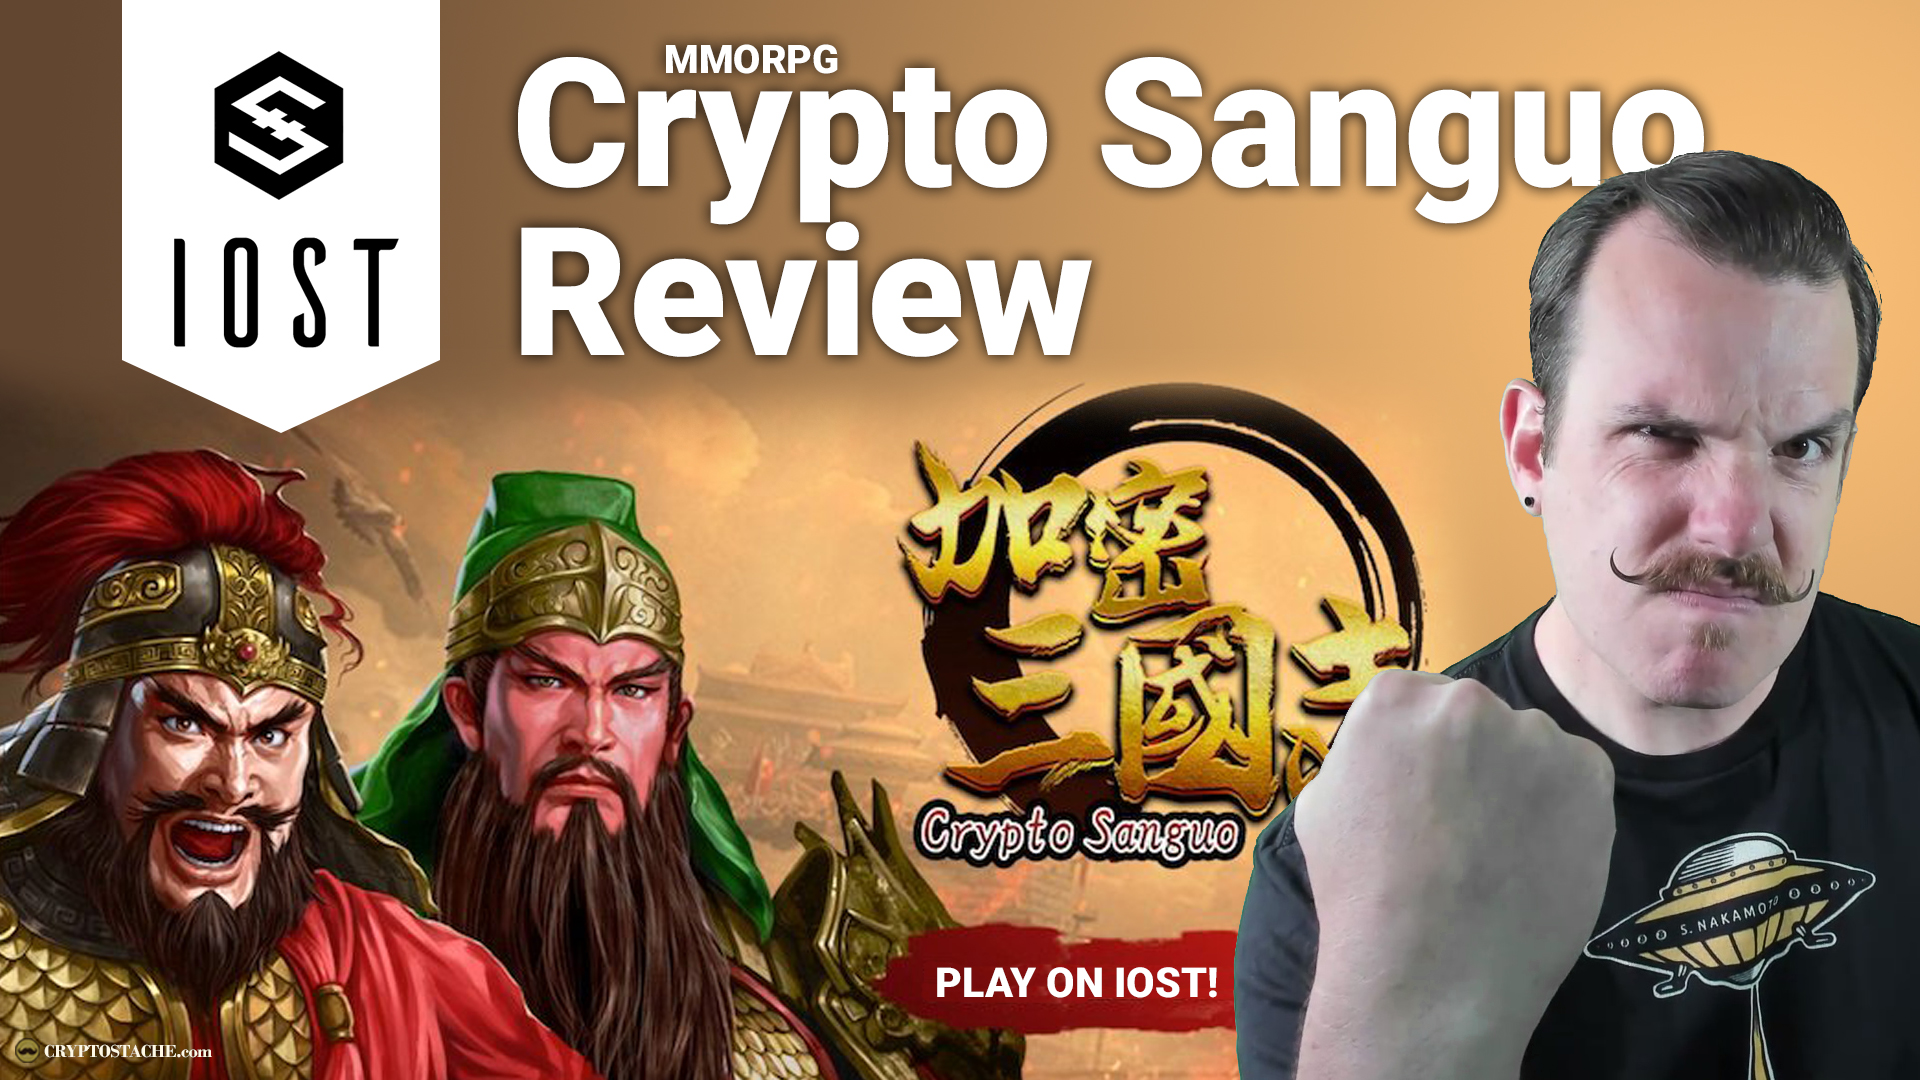 Crypto Sanguo Review - MMORPG Blockchain Game on IOST (2019)